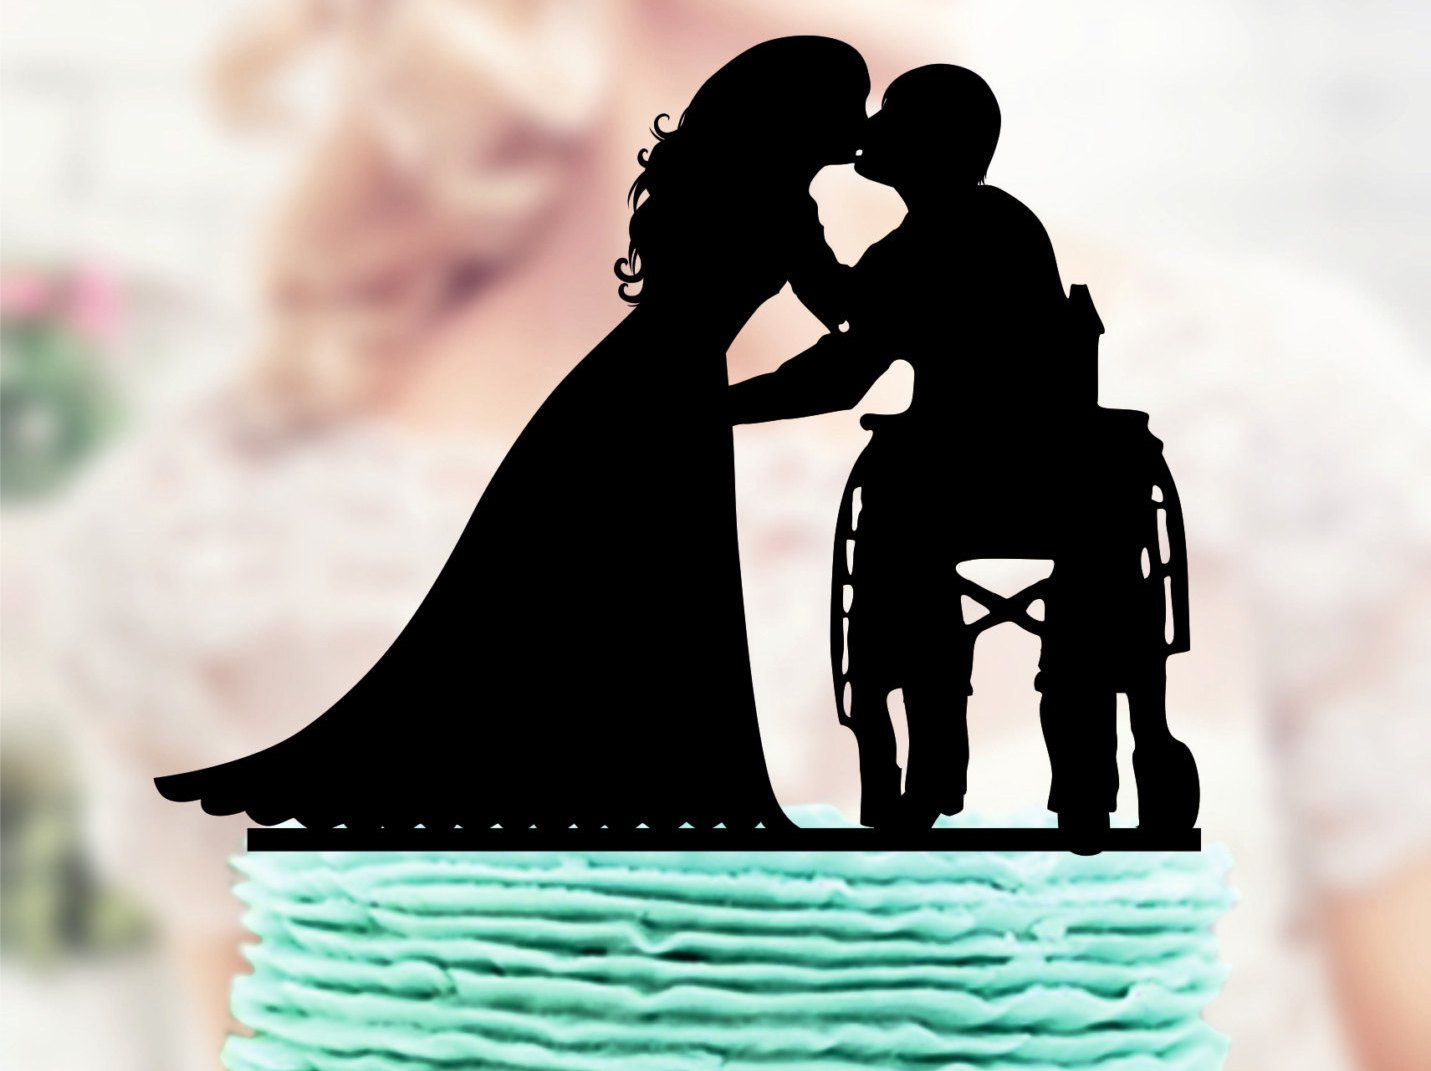 Wheelchair Wedding Cake Topper Groom in Wheelchair Wedding Cake Topper Silhouette Acrylic Cake Topper Bride Groom Topper